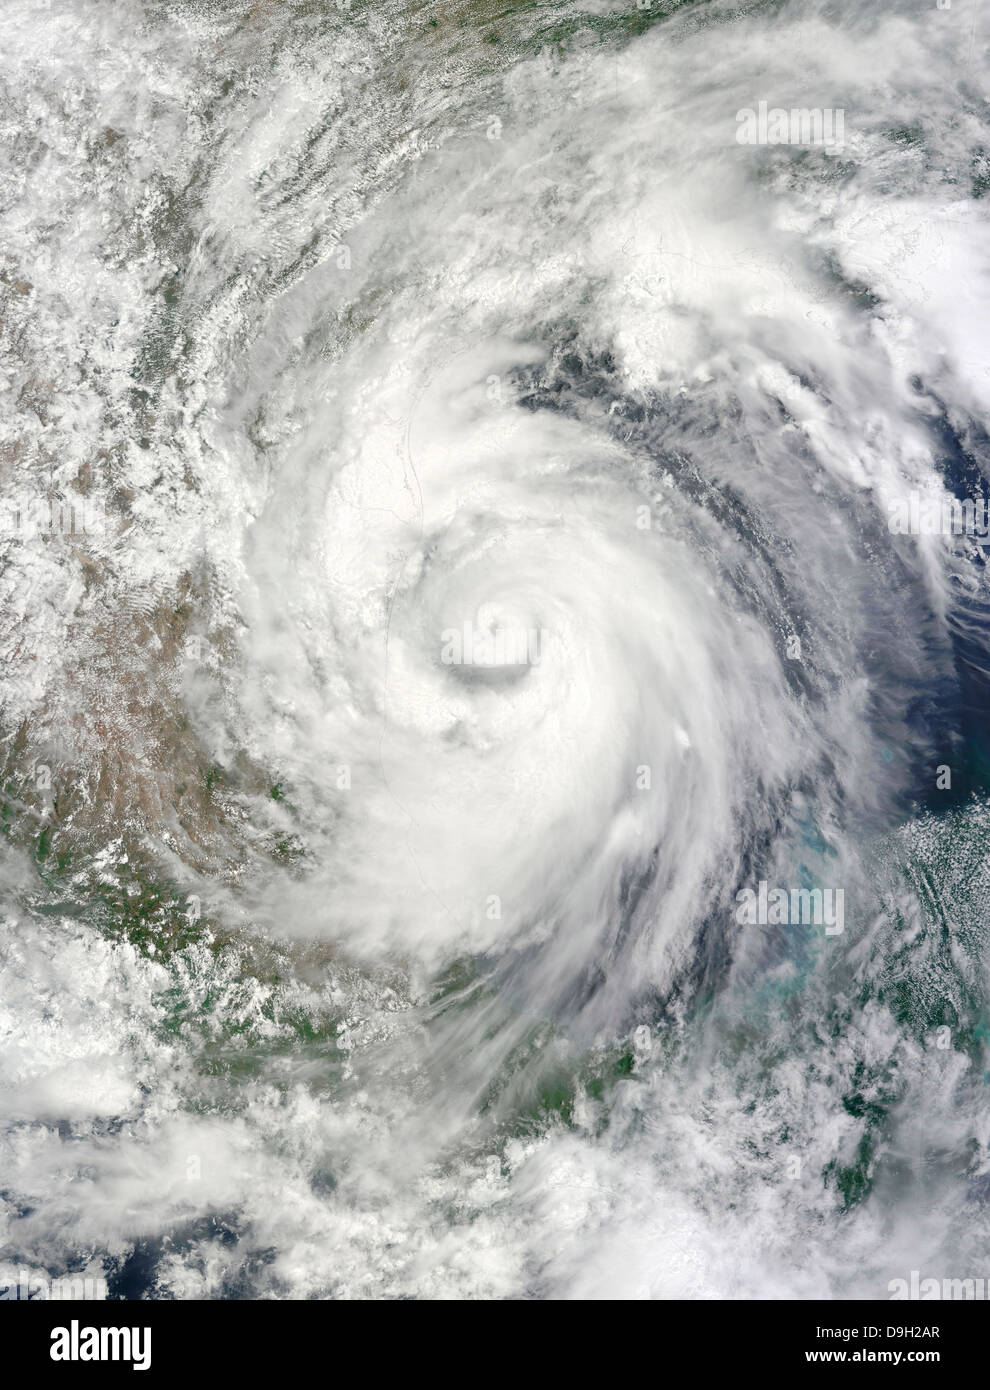 Hurricane Alex over the western Gulf of Mexico. - Stock Image